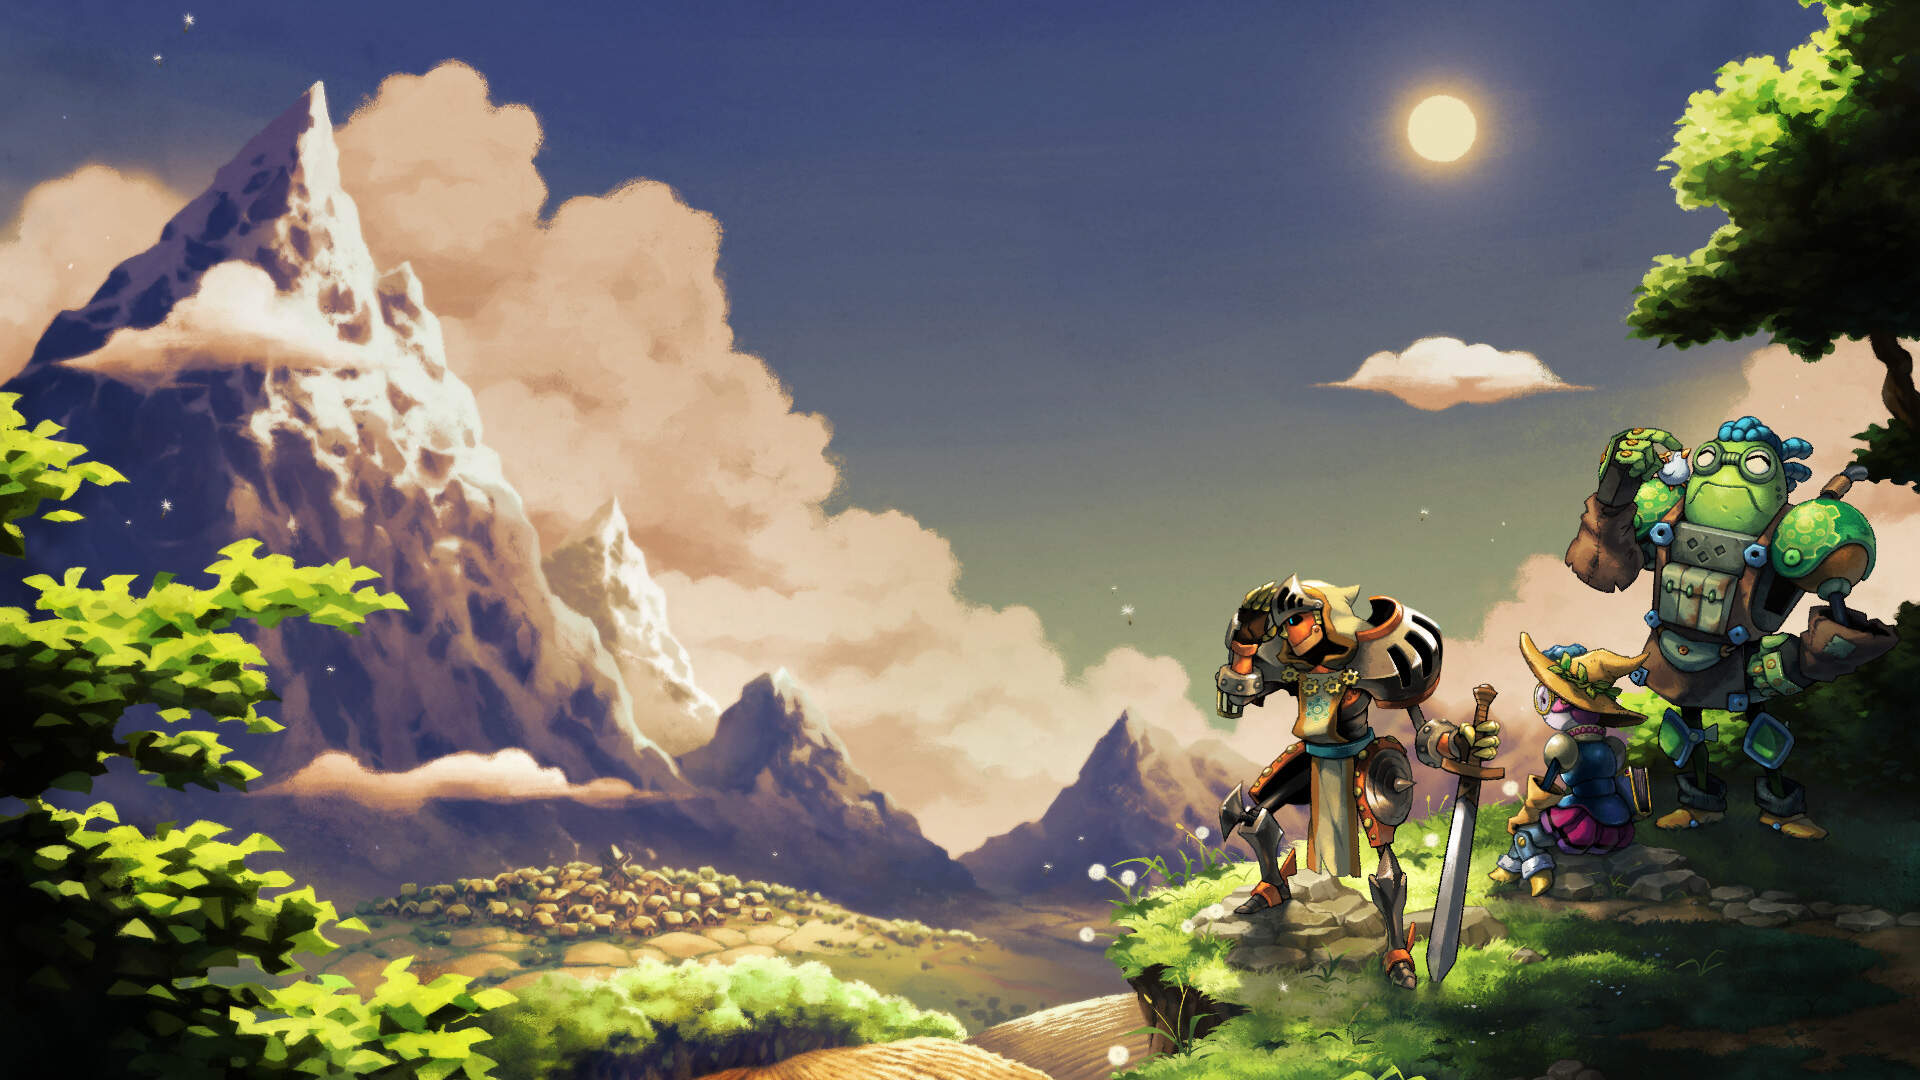 Don't Let the Cute Art Fool You: SteamWorld Quest is Hard (And Really Good)